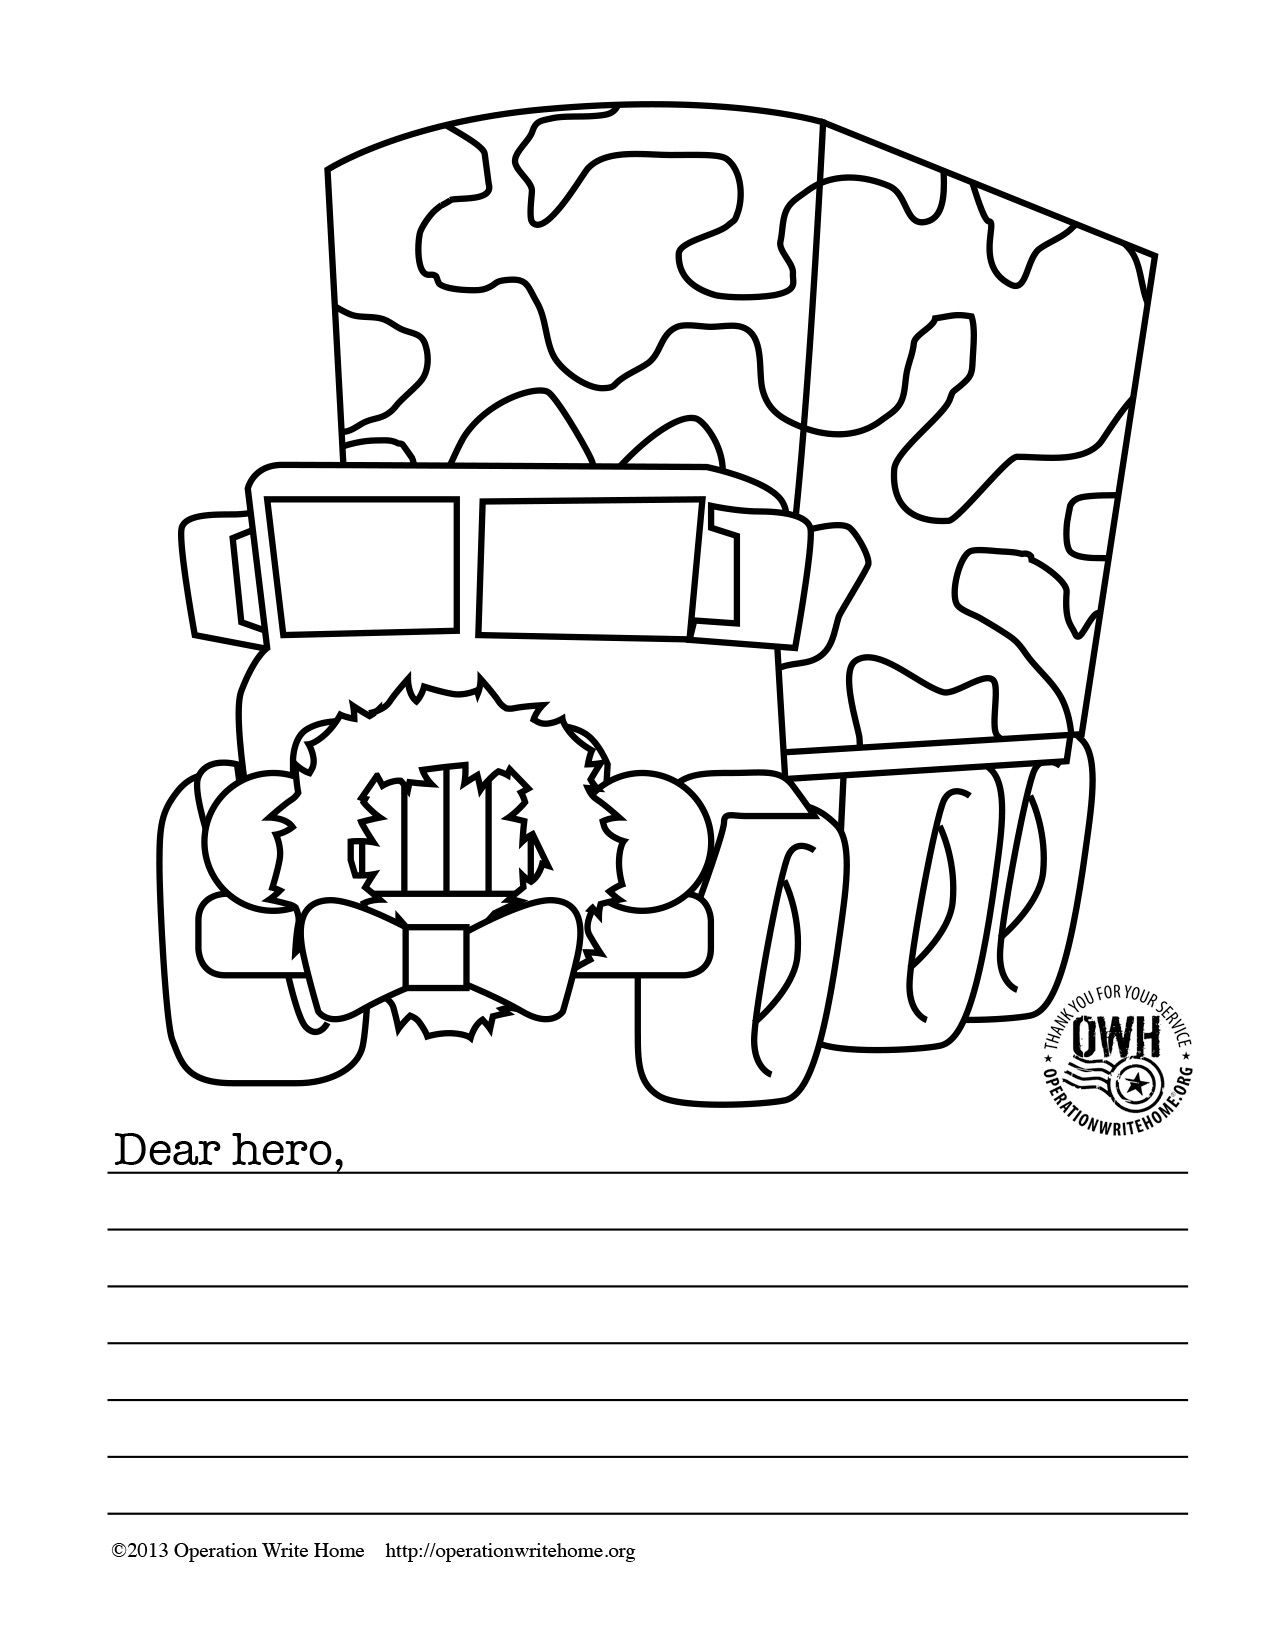 Christmas Card Colouring Pages With FREE Military Coloring For Operation Write Home